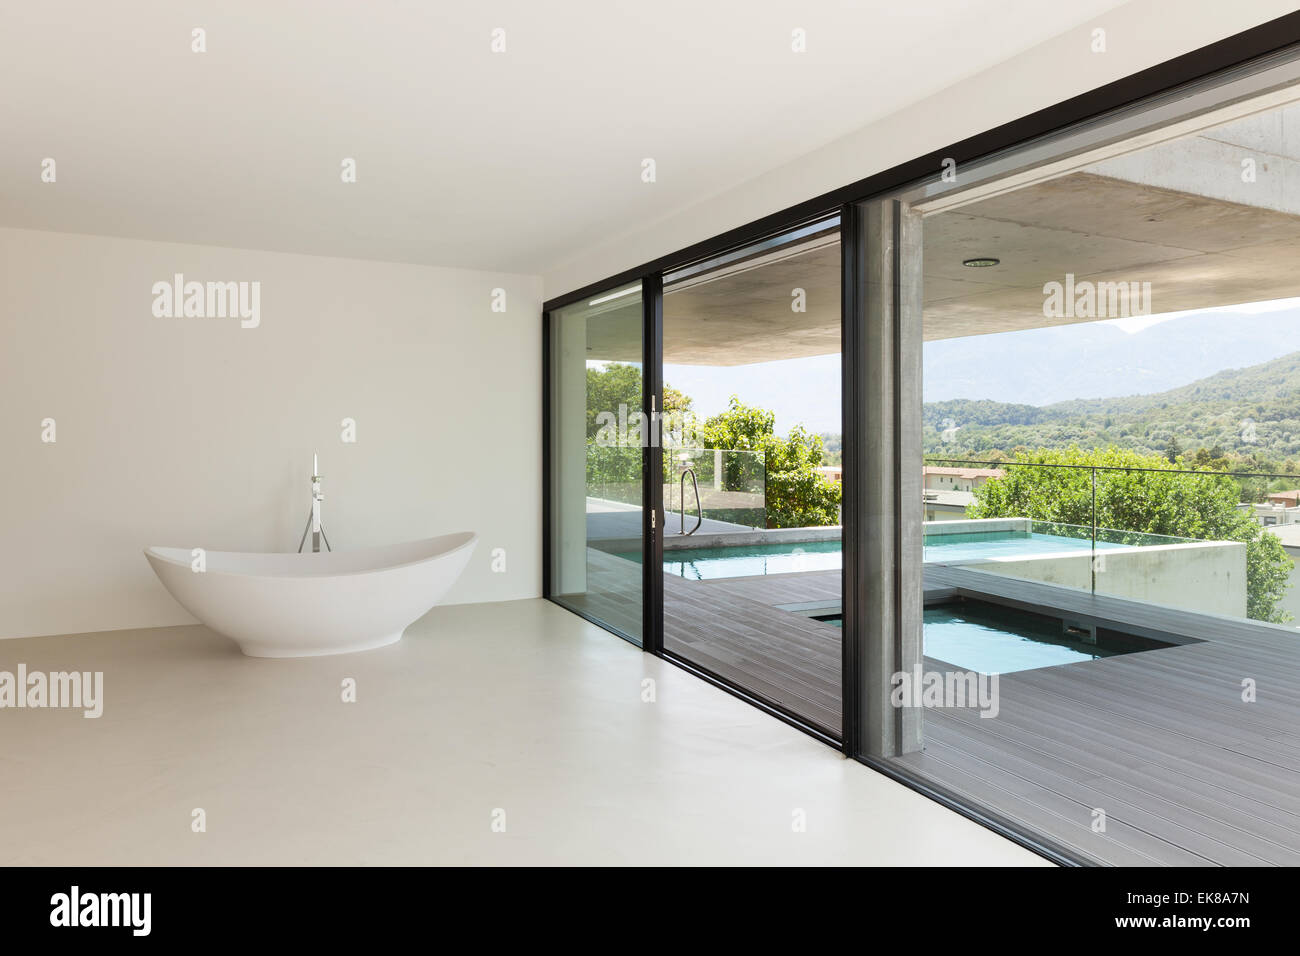 House Interior Modern Architecture Empty Room With Bath